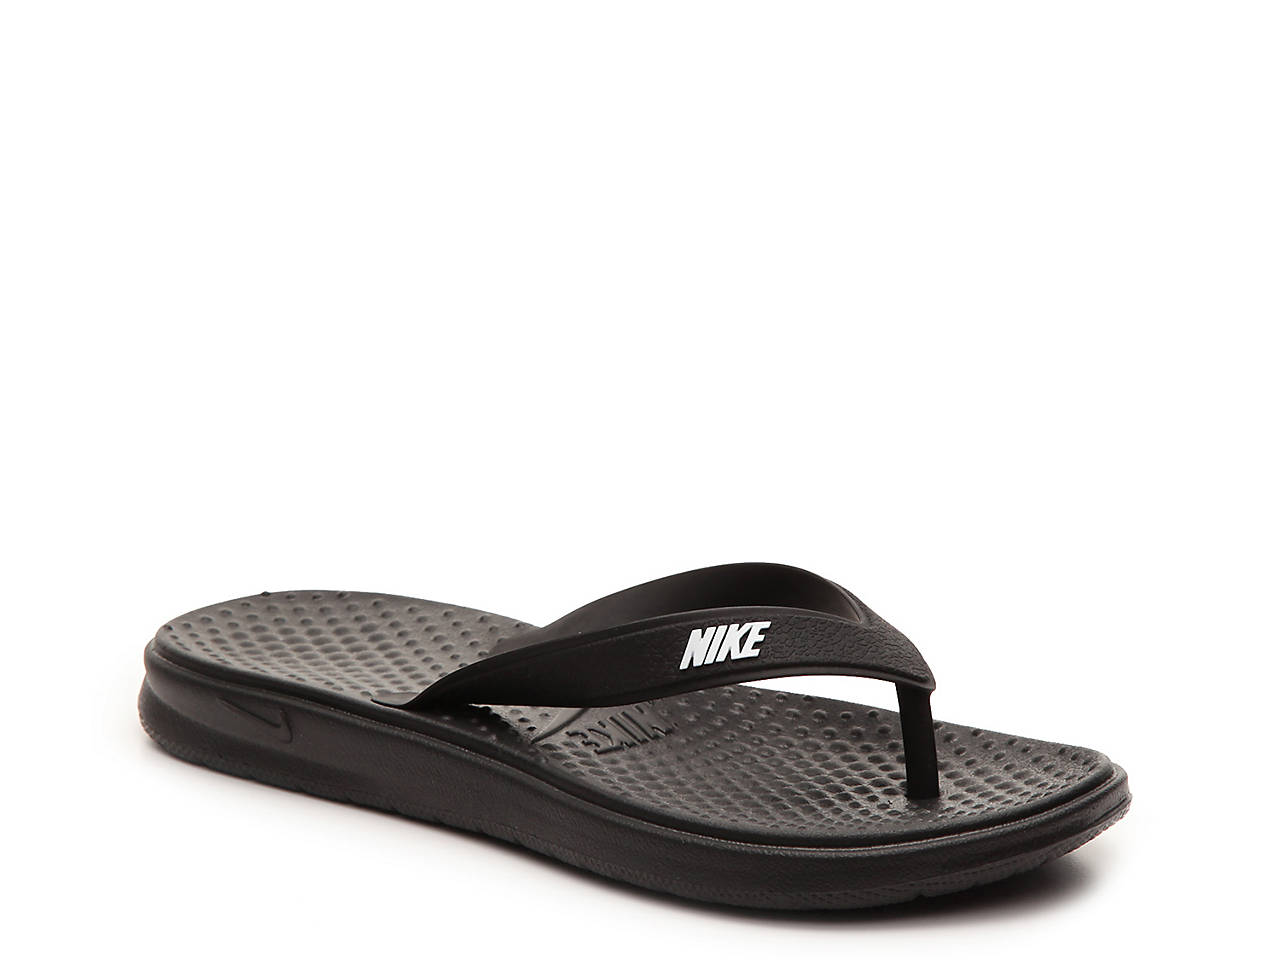 669b015d2ee1 Nike Solay Flip Flop Women s Shoes